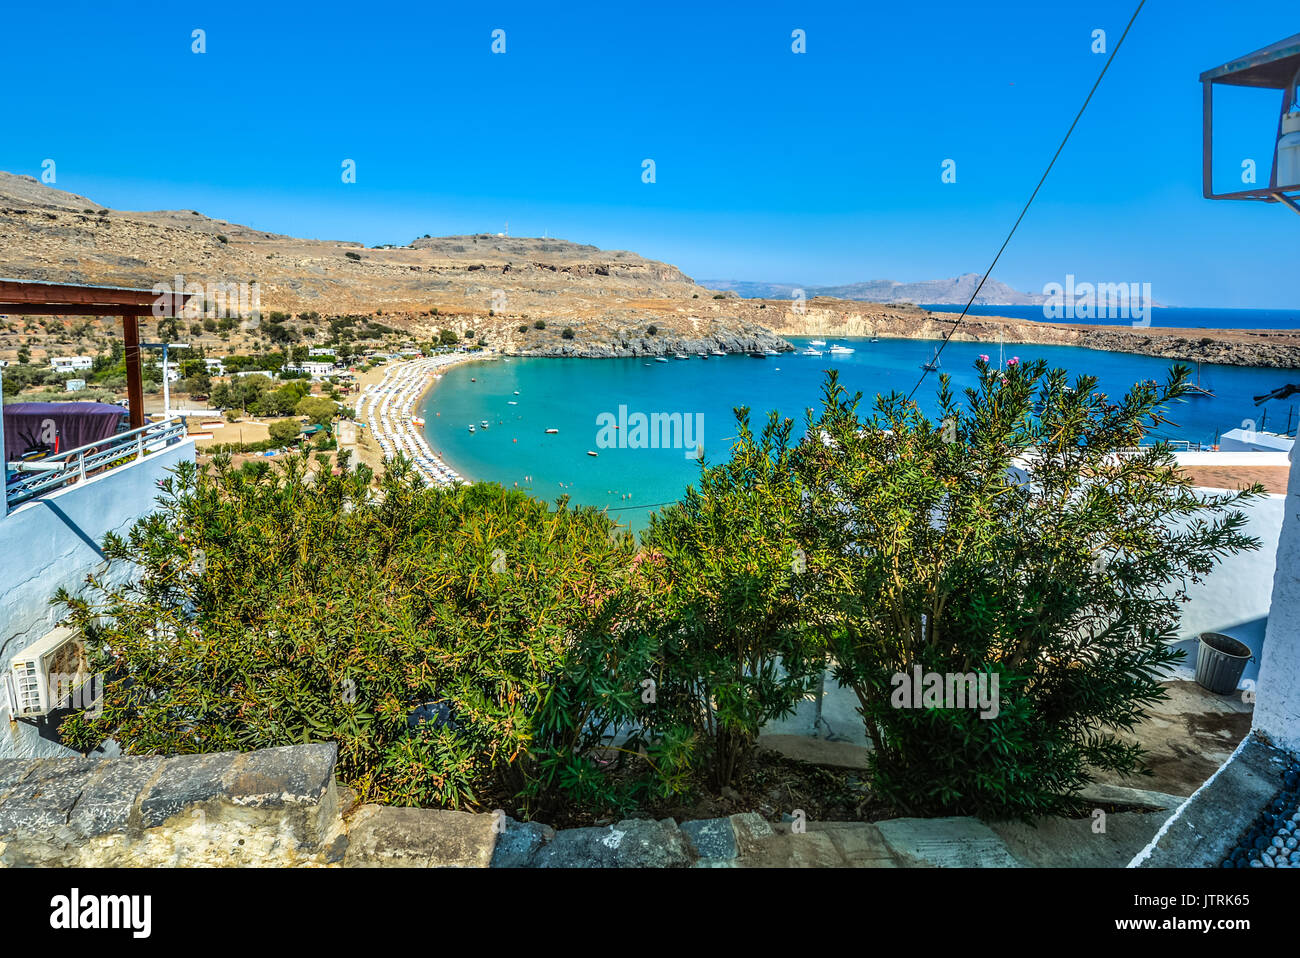 Small bay at Lindos on the island of Rhodes Greece crowded with beach umbrellas as boats and swimmers enjoy the bay and Mediterranean Sea on a hot day - Stock Image